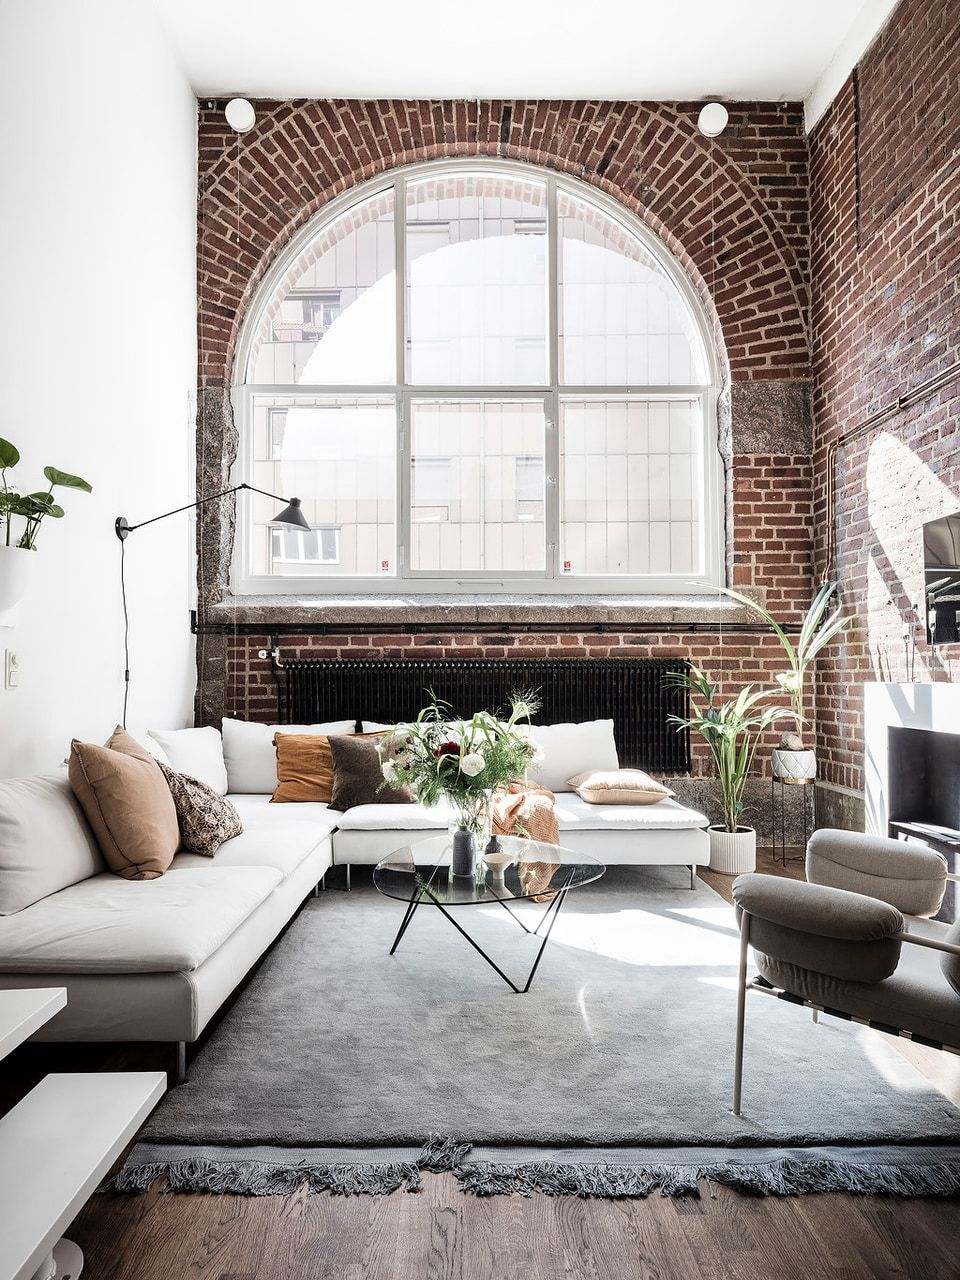 Living Room Interior Design Exposed Brick Wall Big Grid